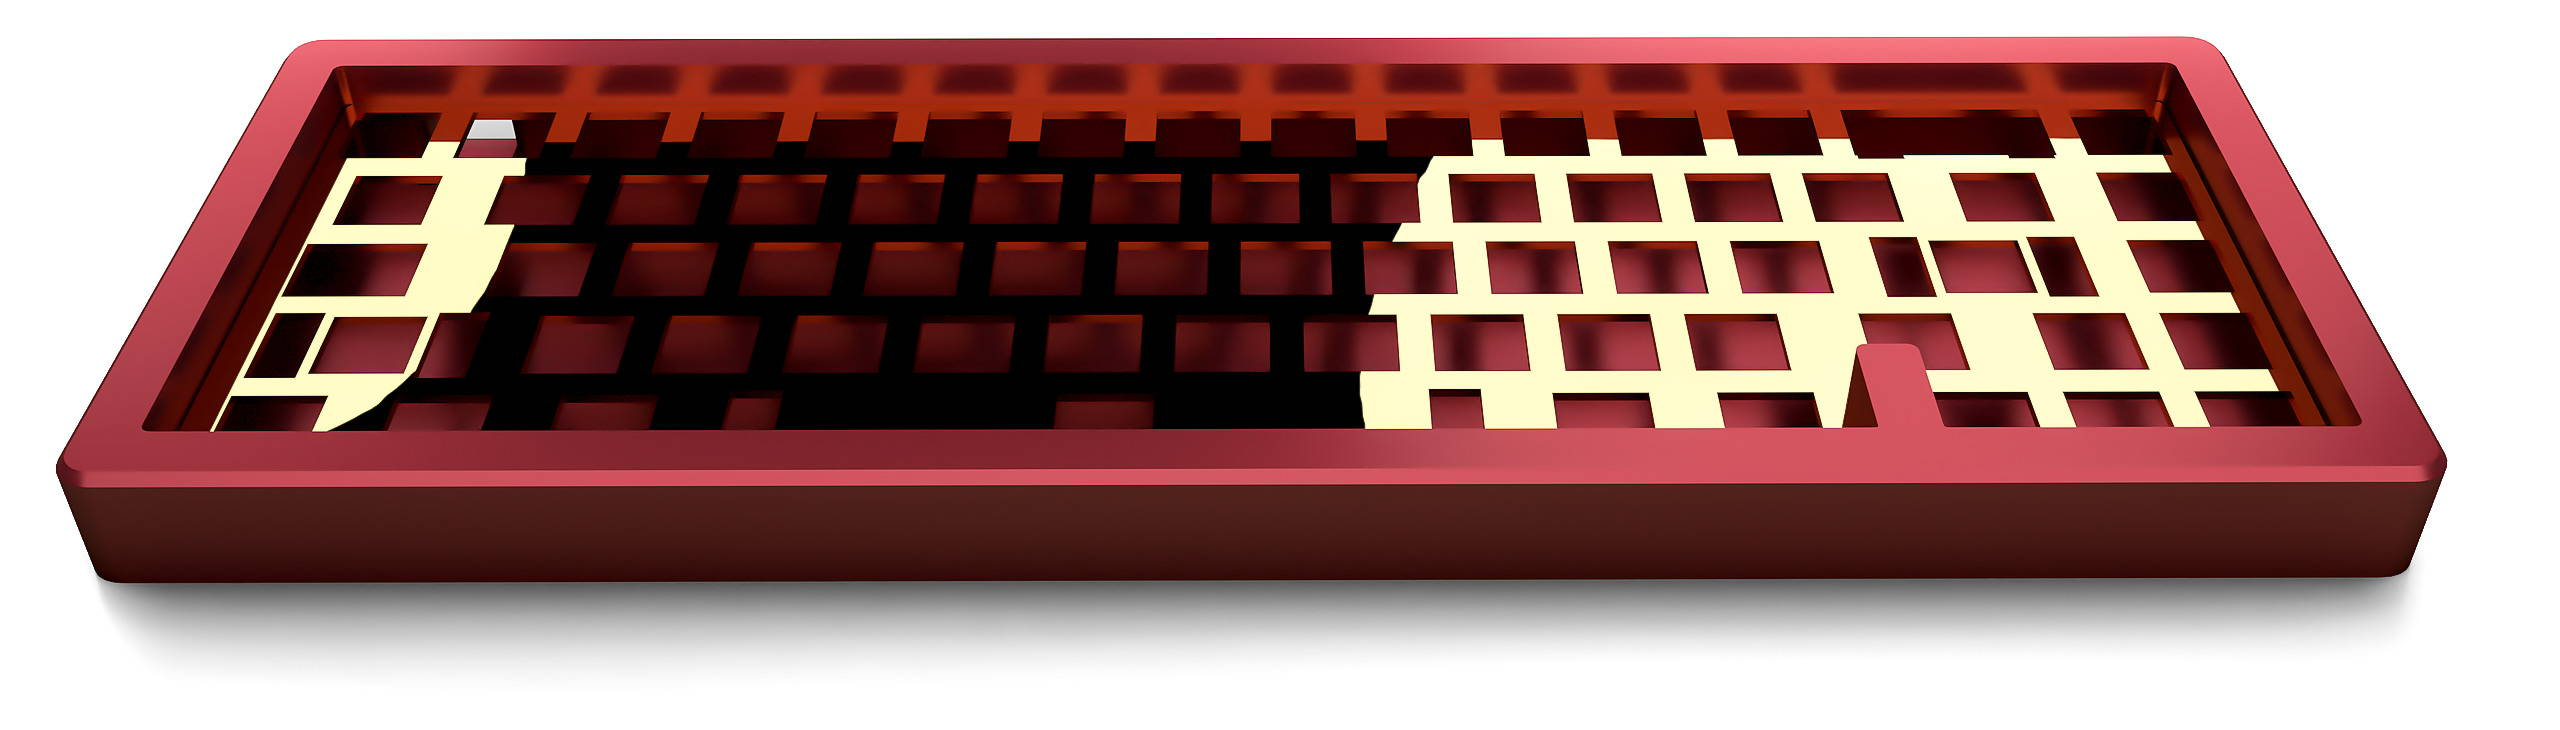 Pizza65 Aluminum Keyboard Case in Pearl Ruby Red with brass ISO  plate